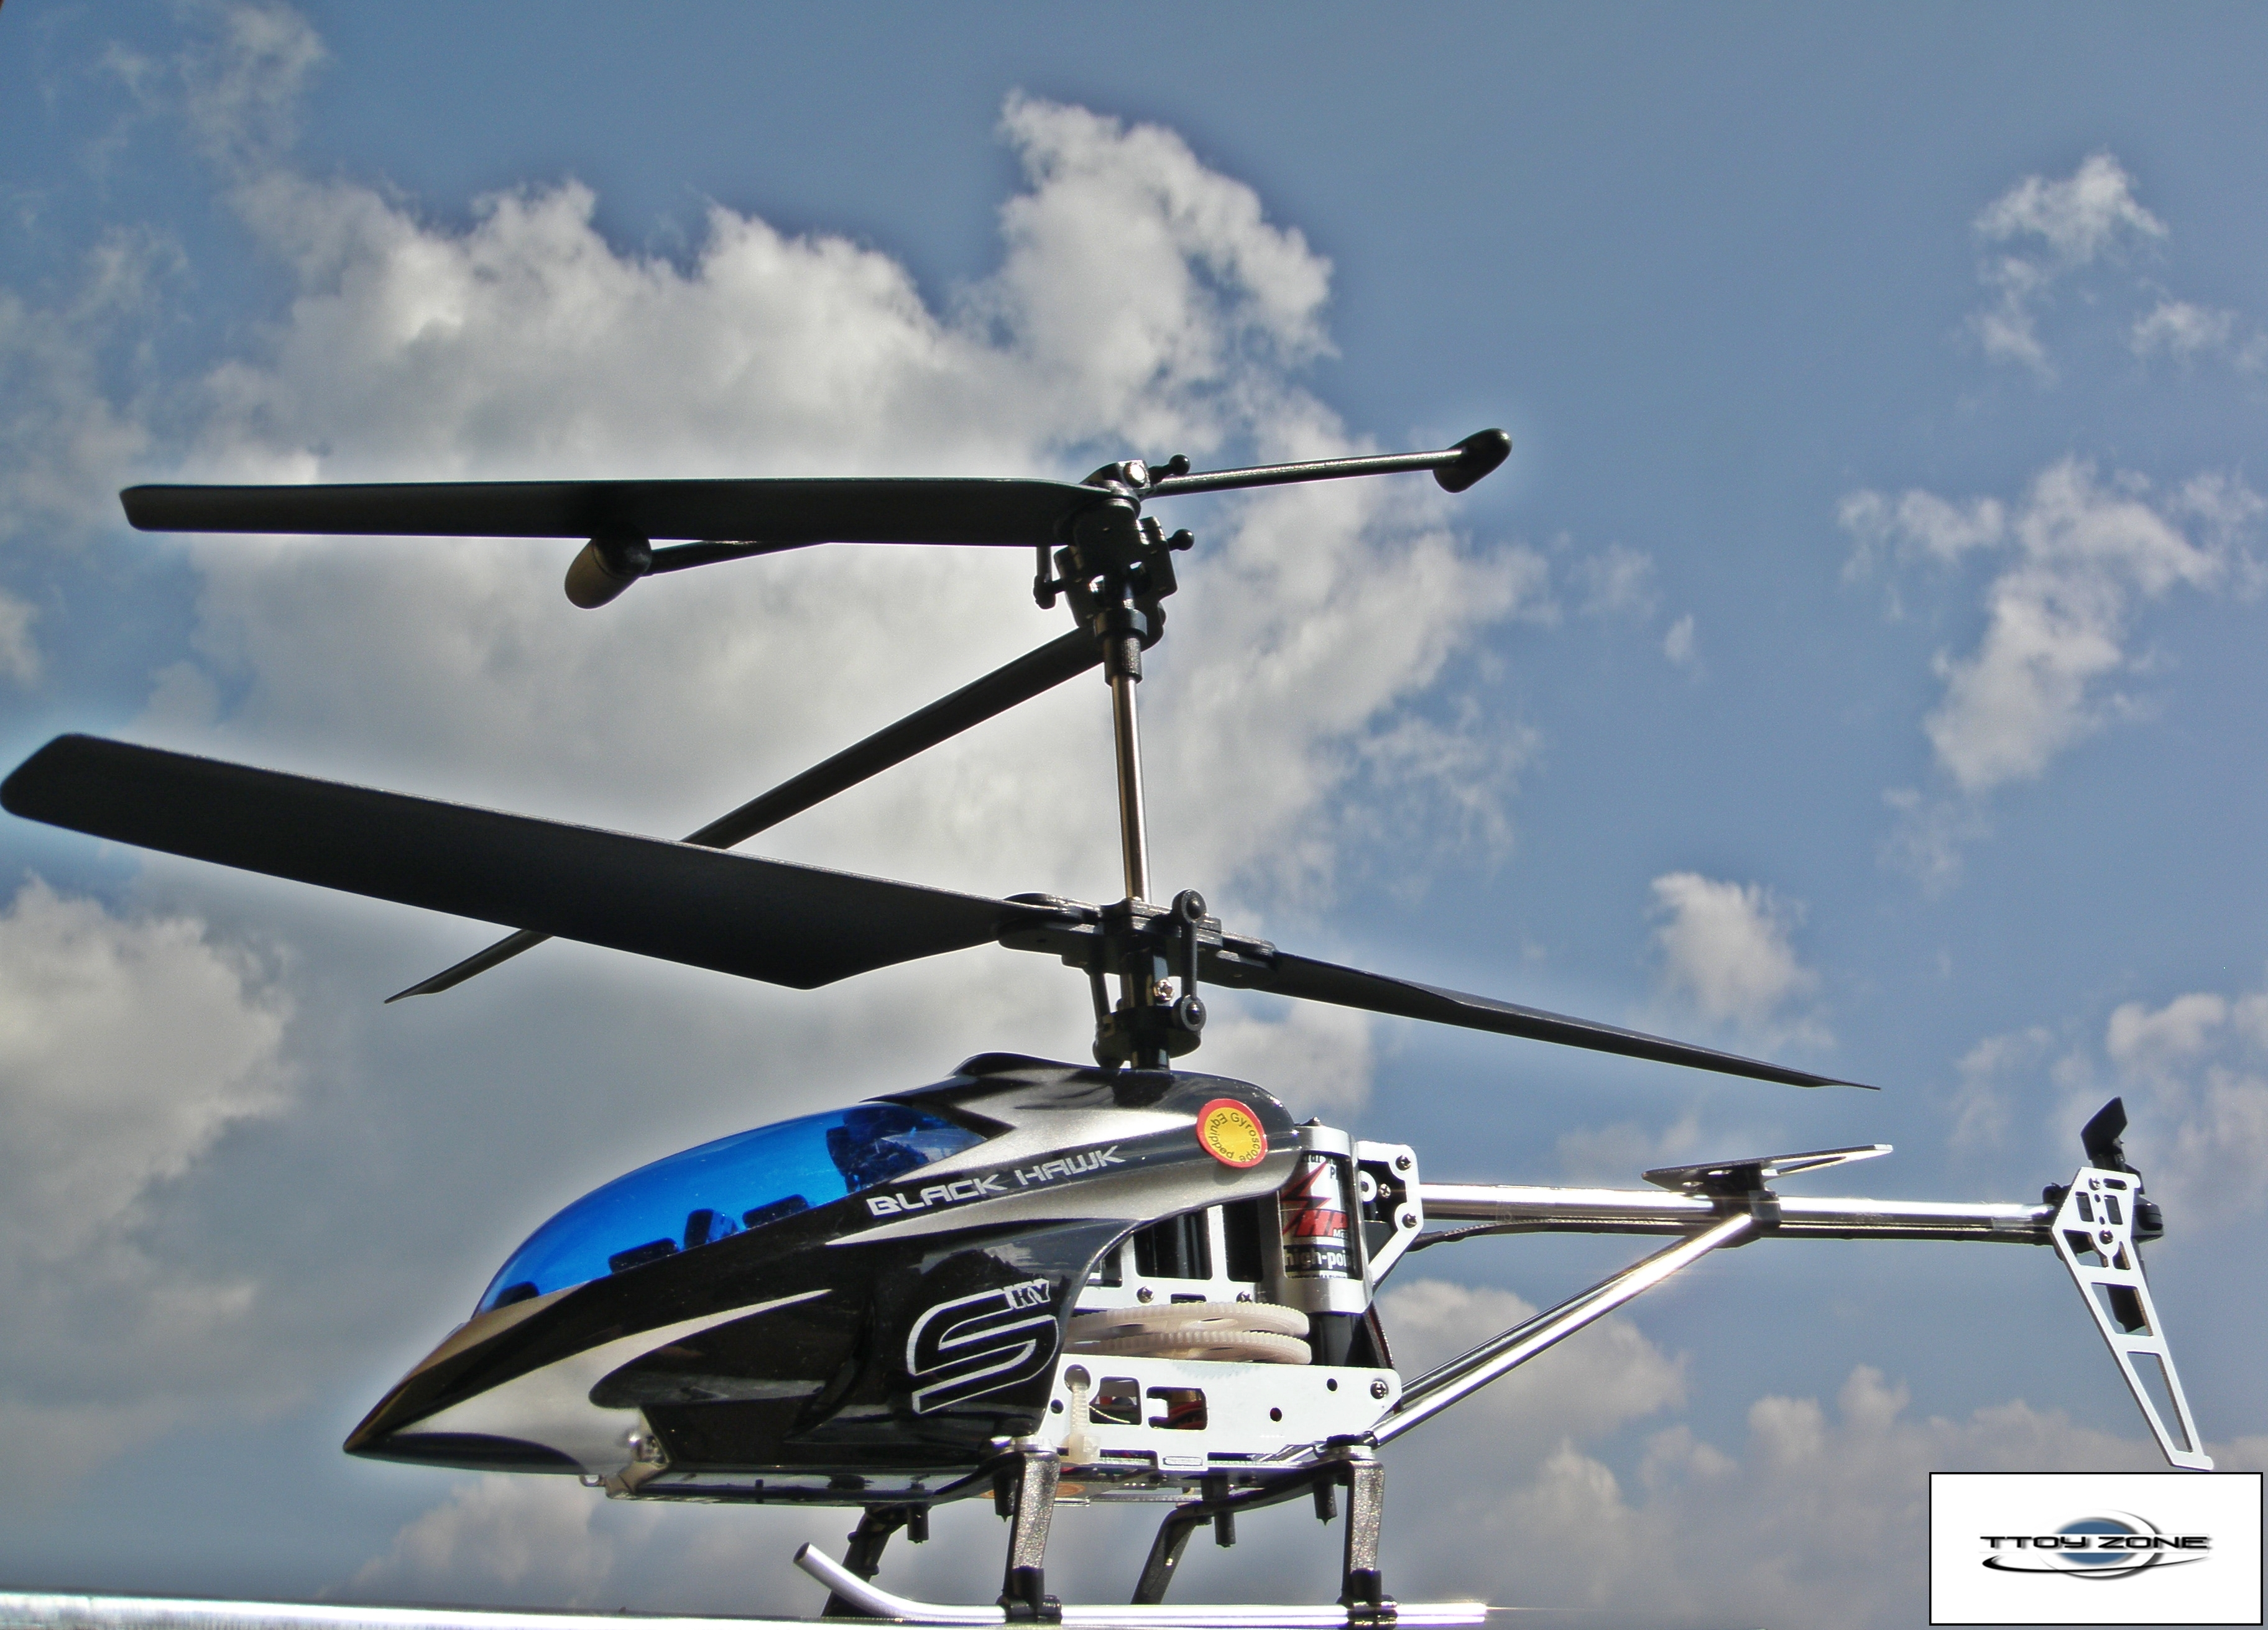 blavk helicopters in the sky essay Describe the sky in a single sentence without using any color words seemingly empty sky stretched out the celestial space had become pitch black.